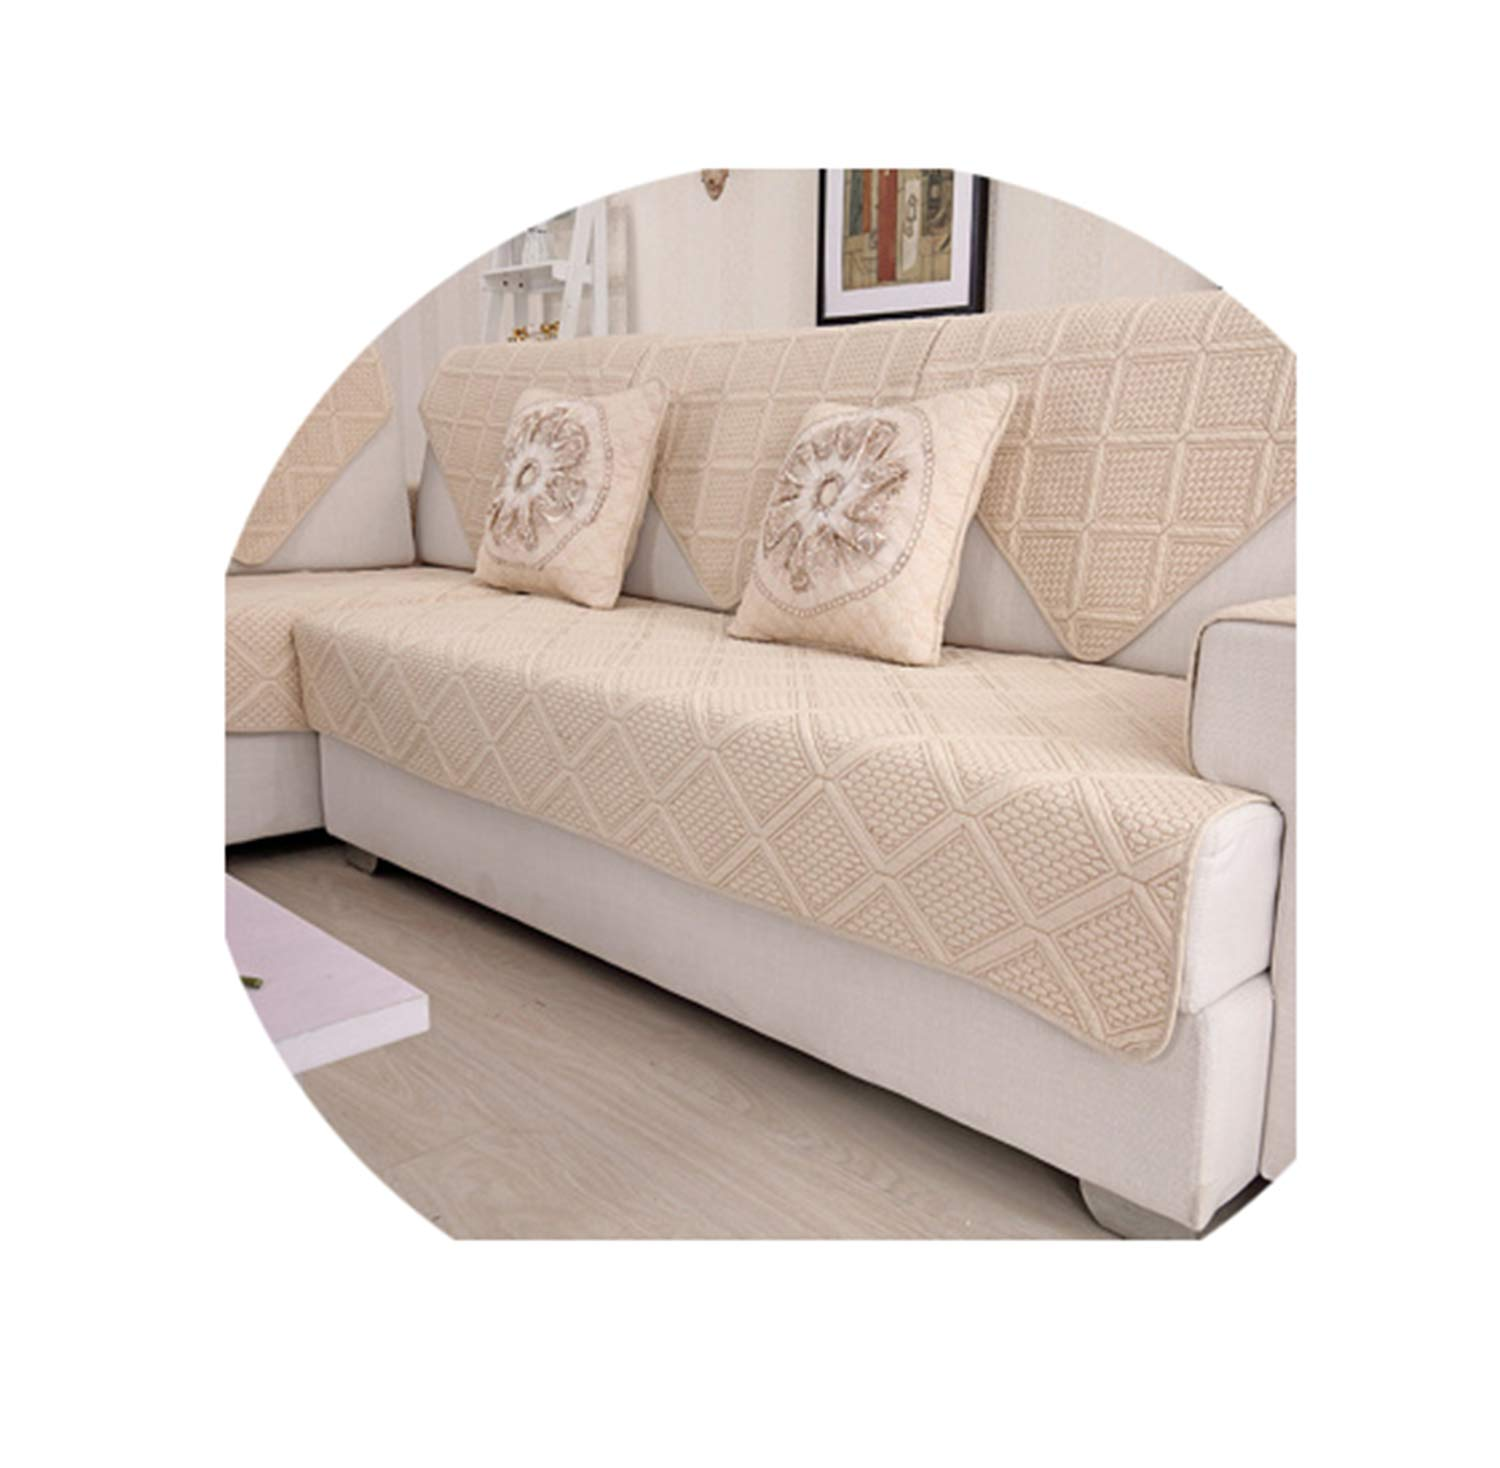 Amazon.com: New Modern Style Sofa Slipcovers Cotton ...